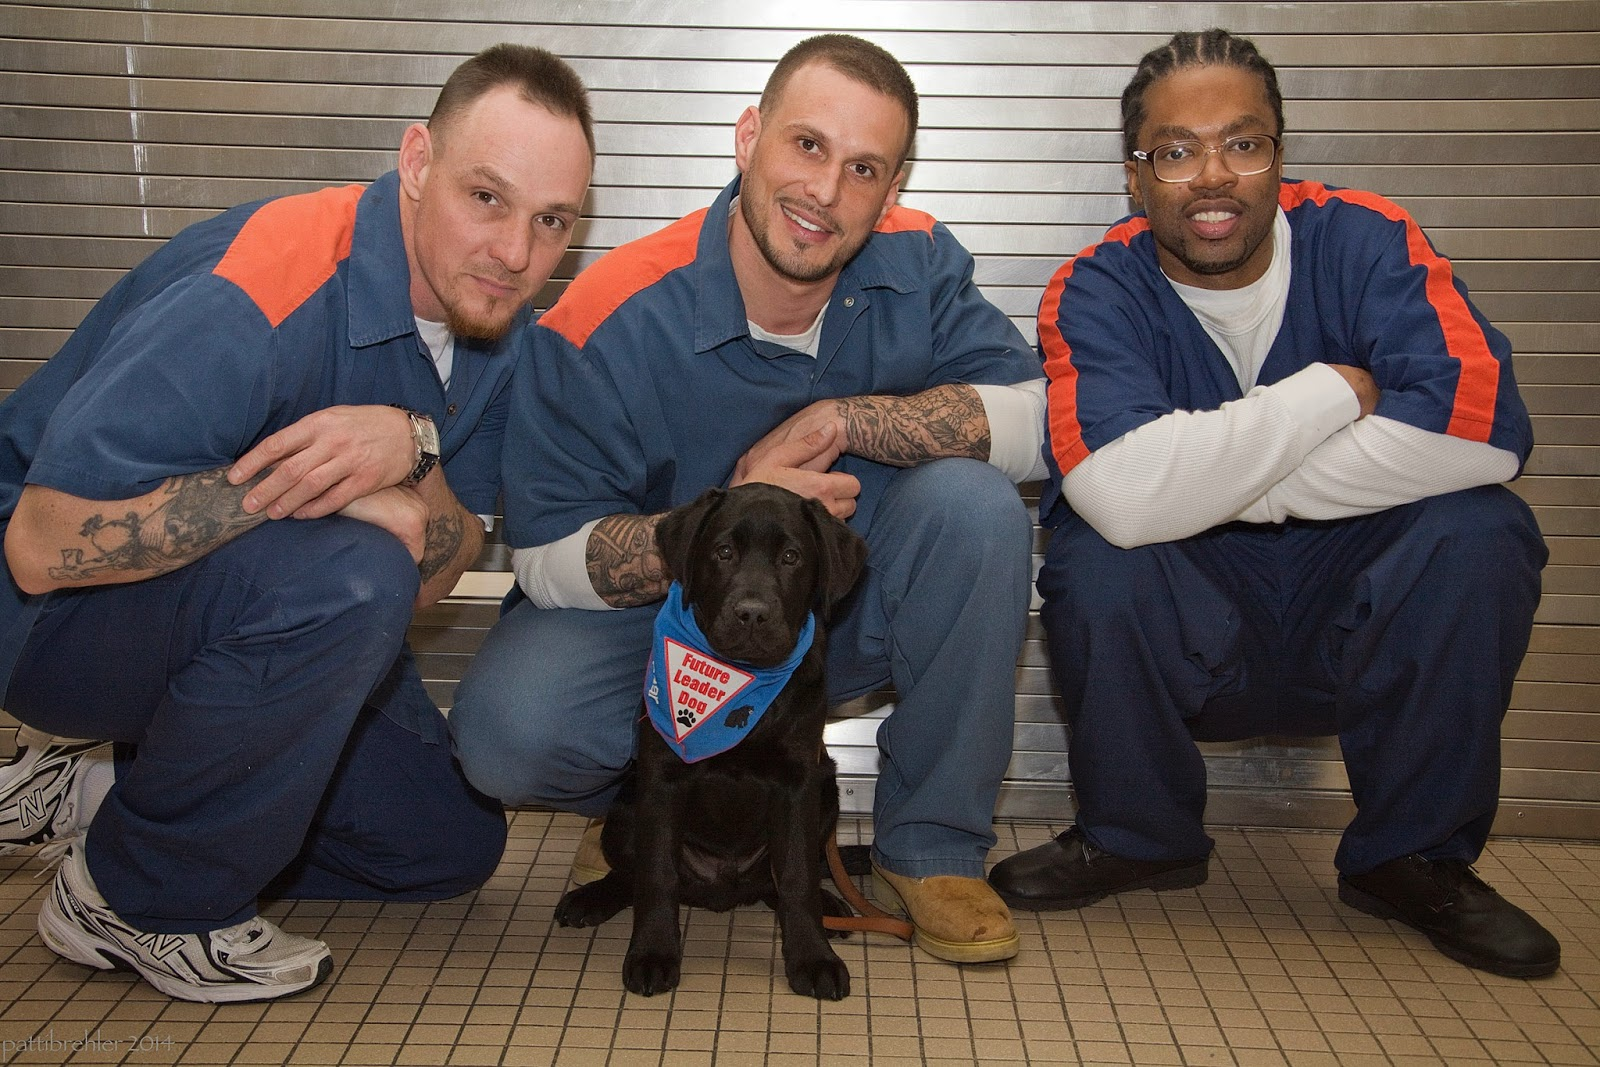 Three men are squatting in front of a steel wall on a tile floor. A young black lab puppy is sitting in front of the middle man, looking at the camera. The puppy is wearing a blue Future Leader  dog bandana. The men have their arms resting on their knees and are smiling at the camera. The man on the right is an african american and is wearing glasses.